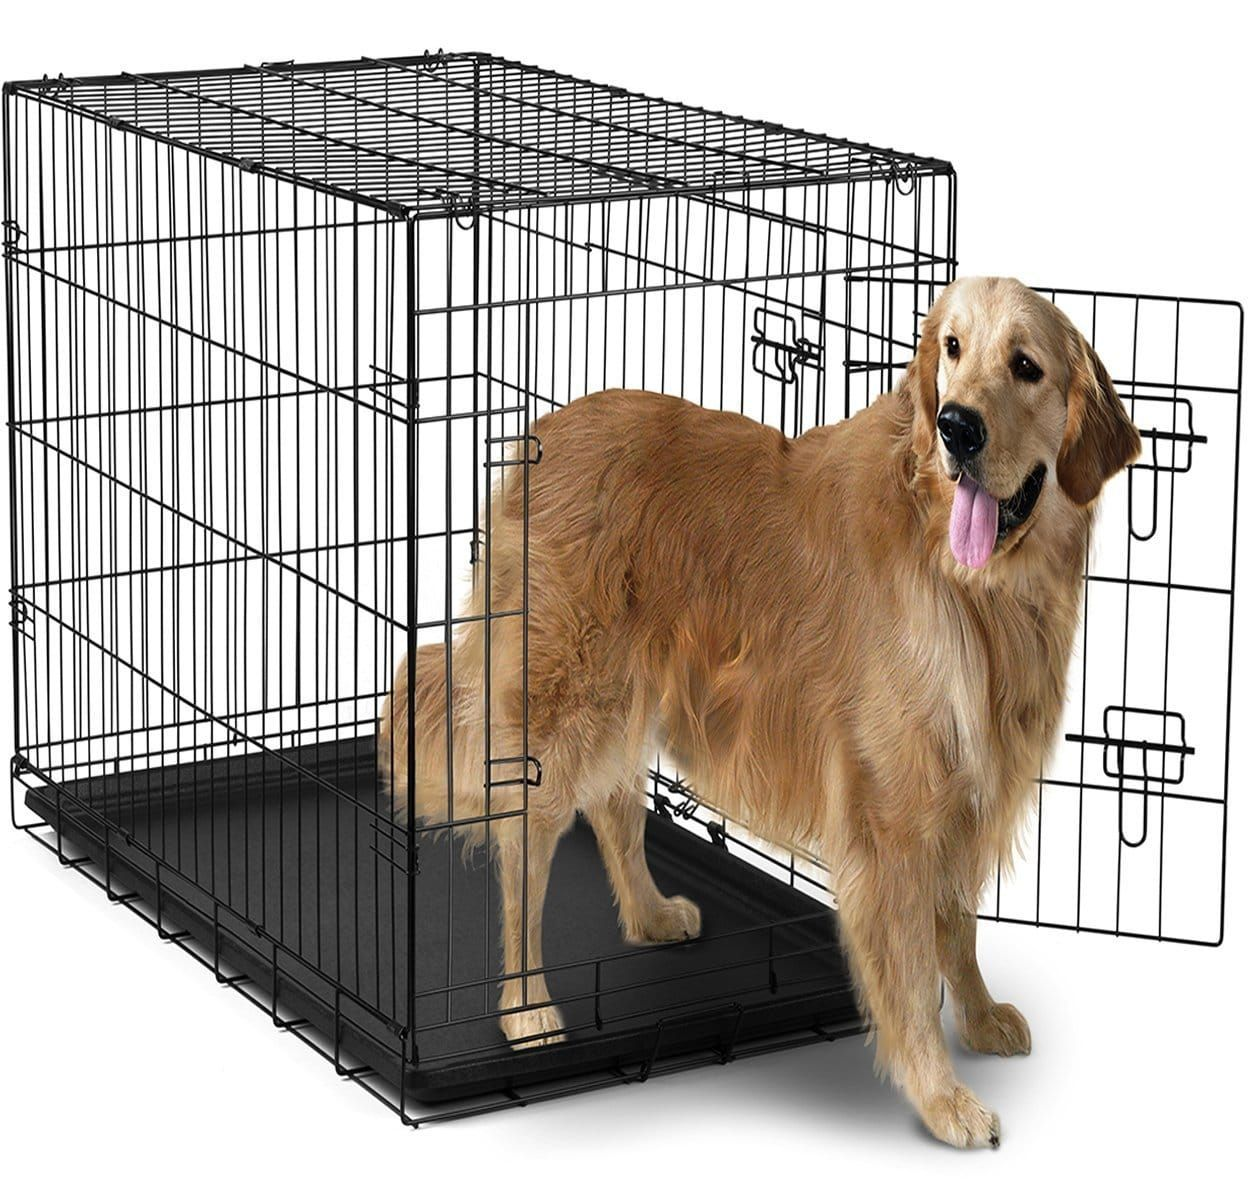 Oxgord 42 Inches Dog Crate With Divider Double Doors Folding Pet